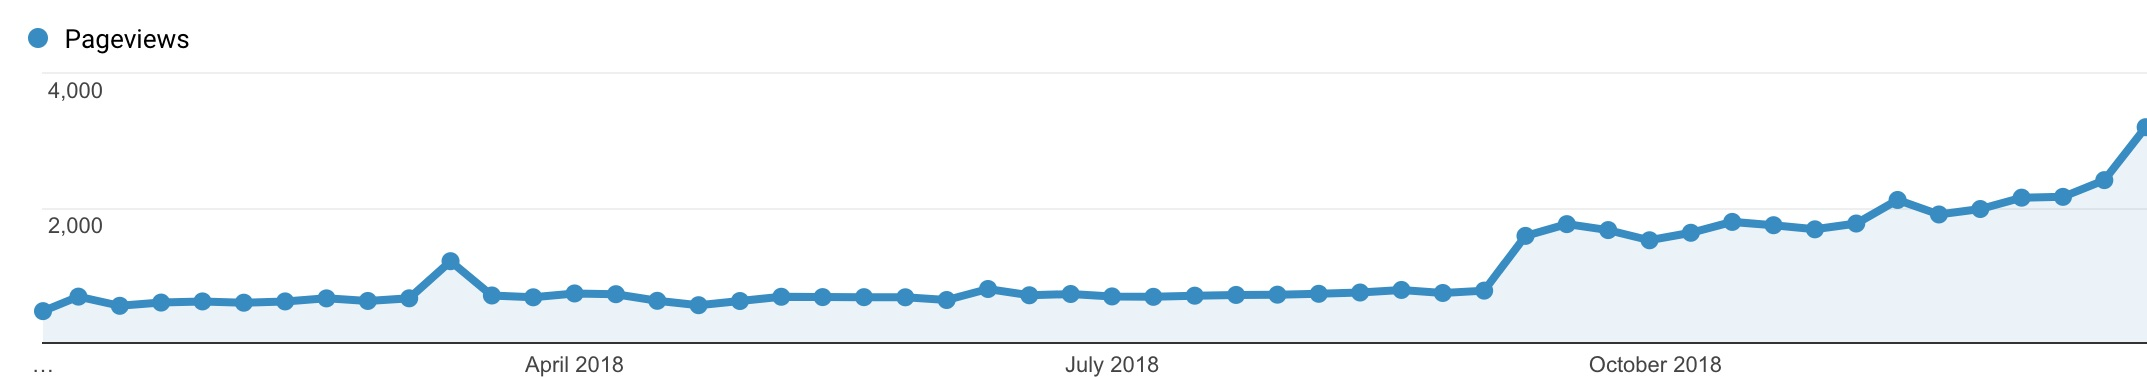 Increased Traffic - Content marketing case study